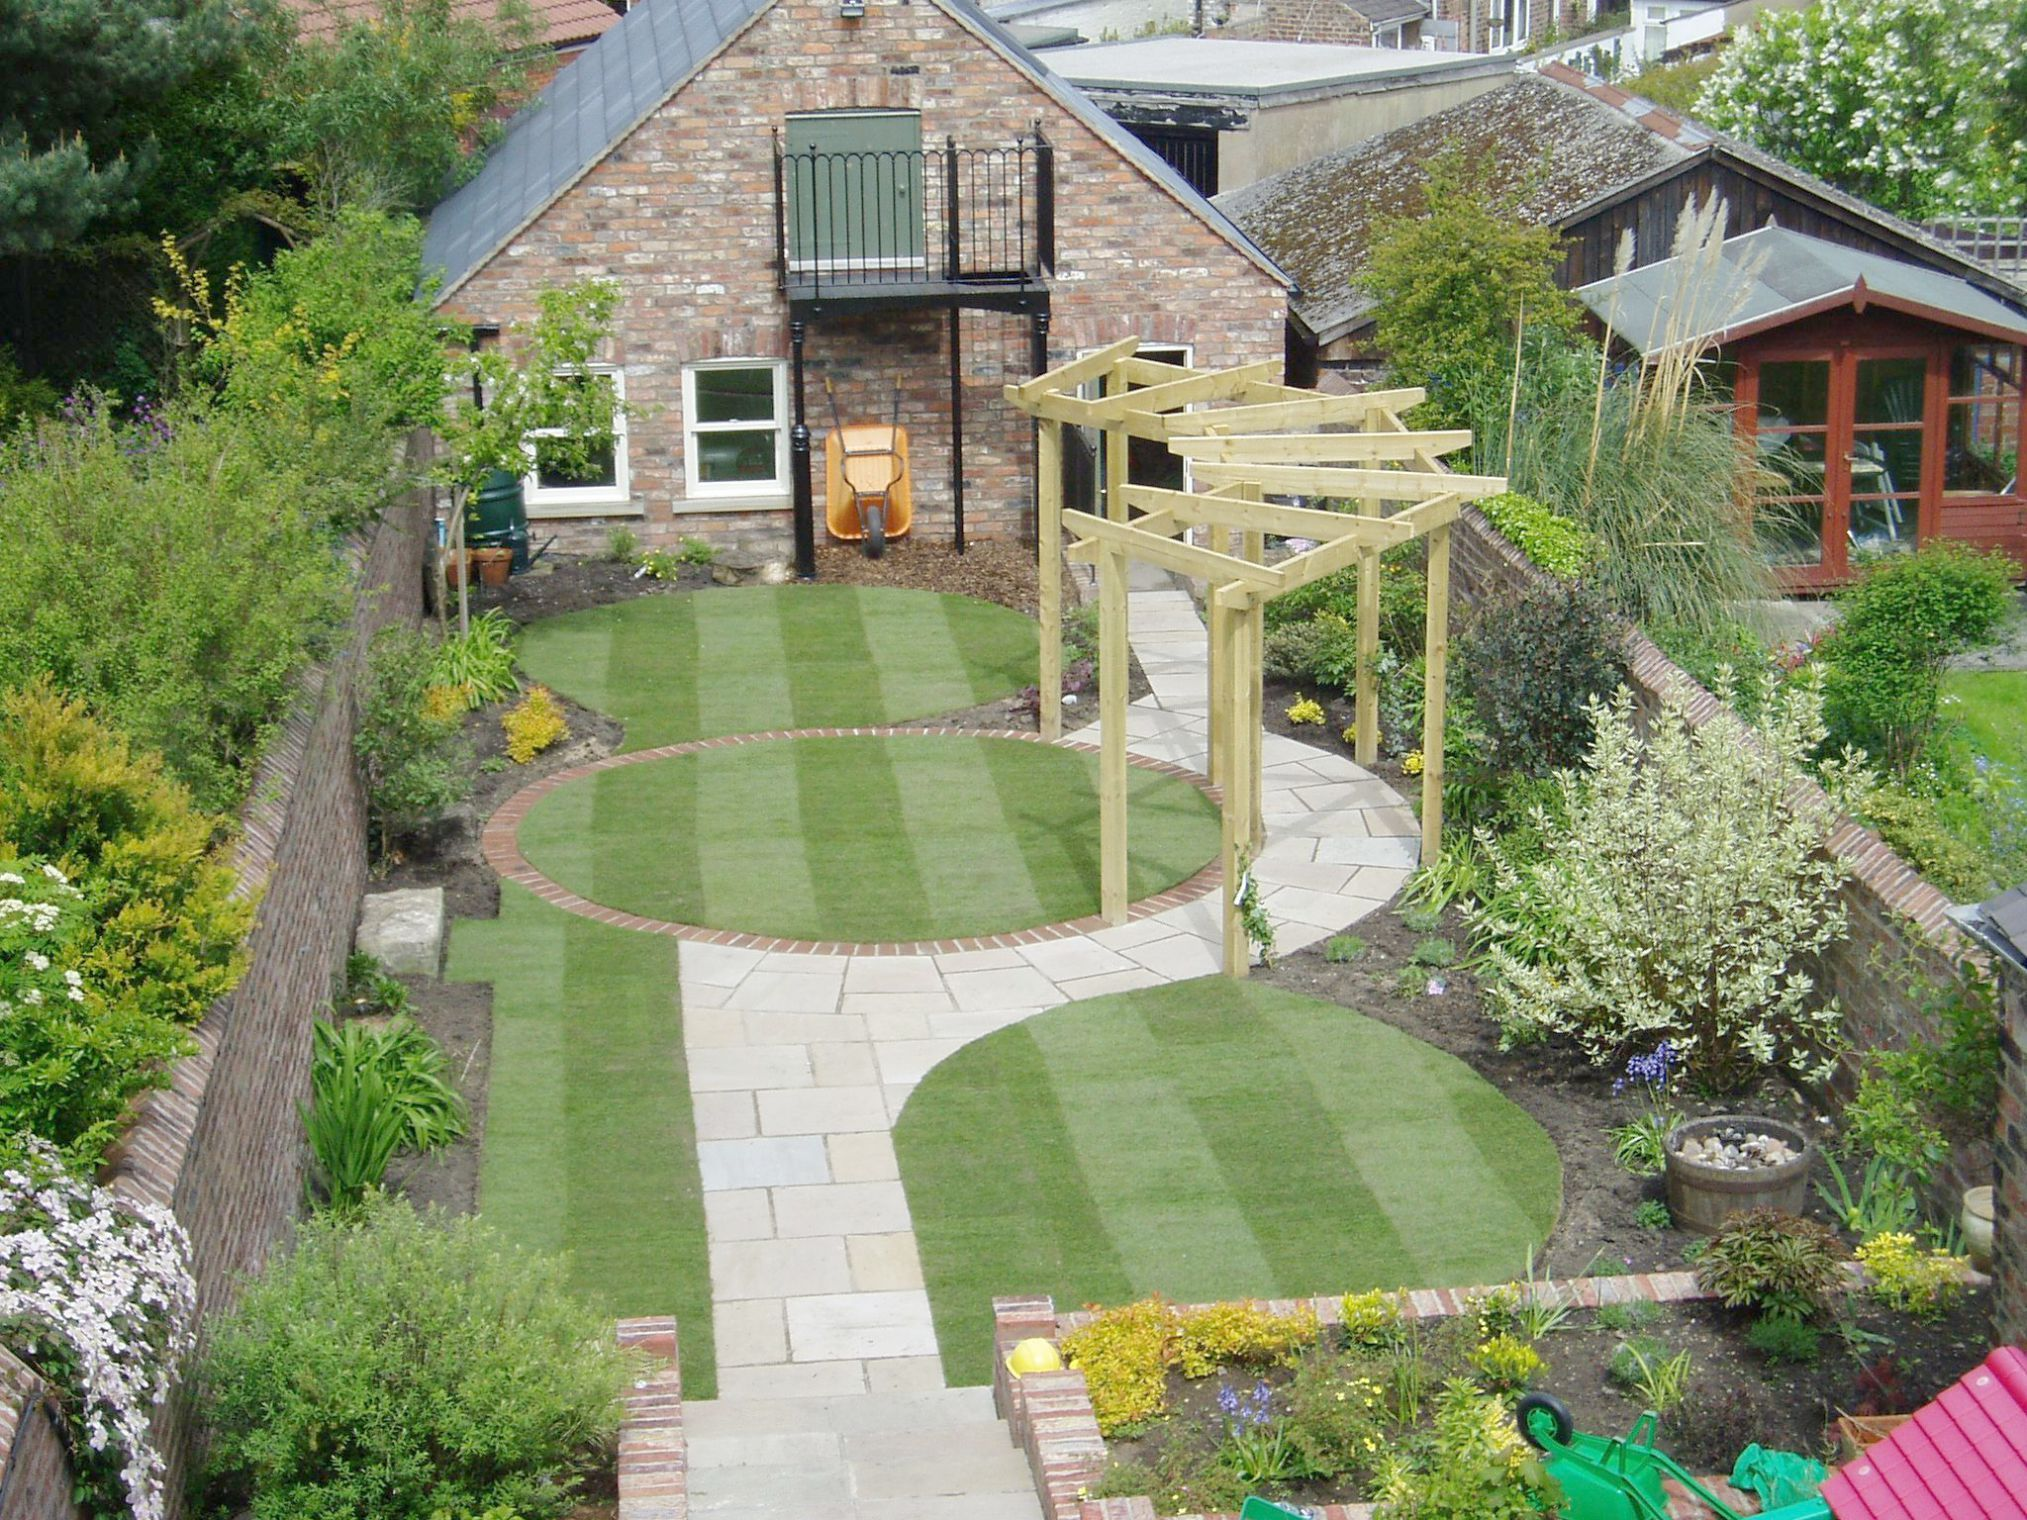 Landscape Gardening Trade Definition Per Landscape Gardening Jobs In Bristol Plus Fre Small Garden Landscape Garden Landscape Design Contemporary Garden Design